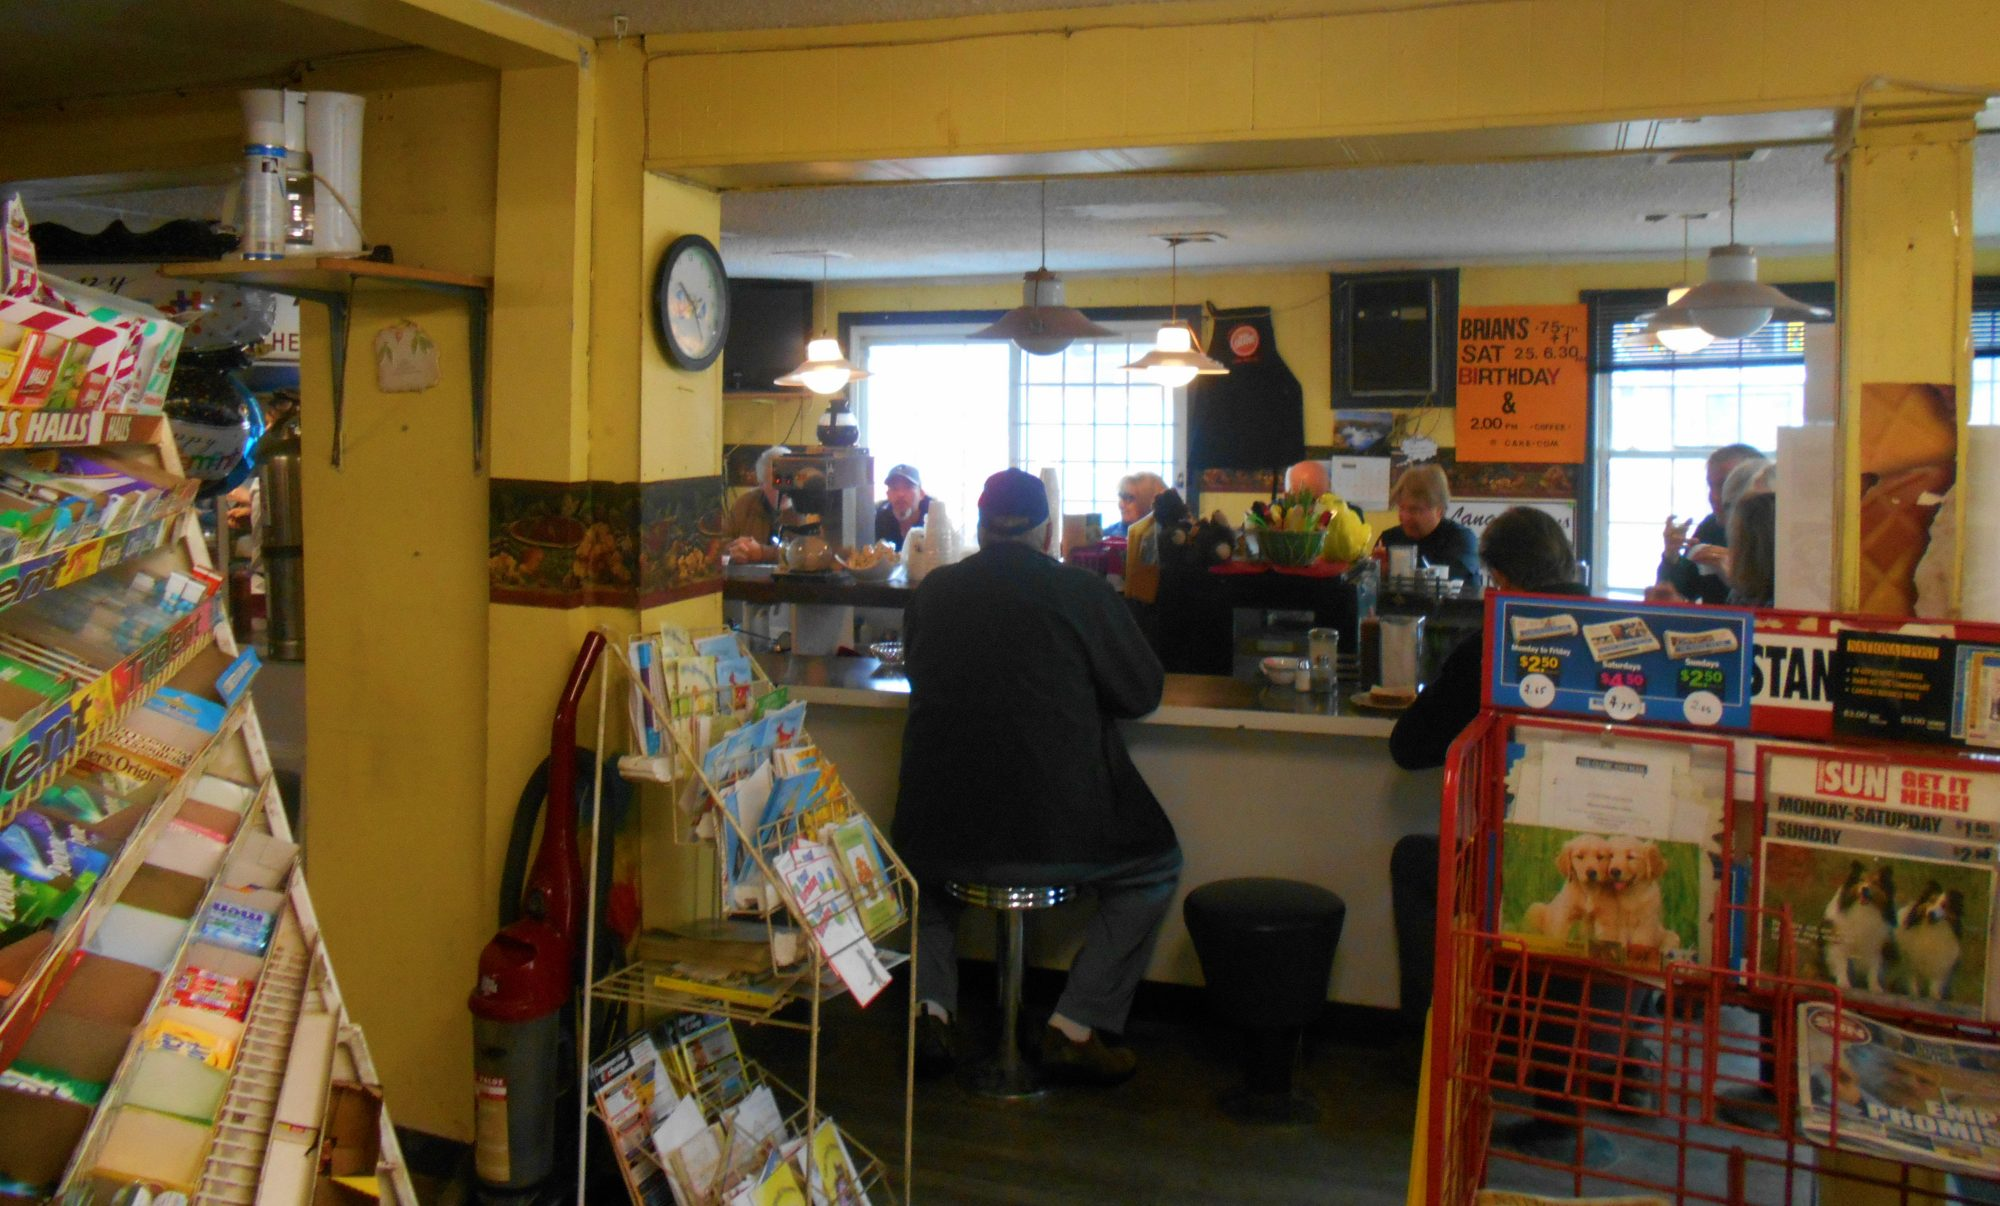 Saying Goodbye to Anna: The East End Variety & Snack Bar Fades Away